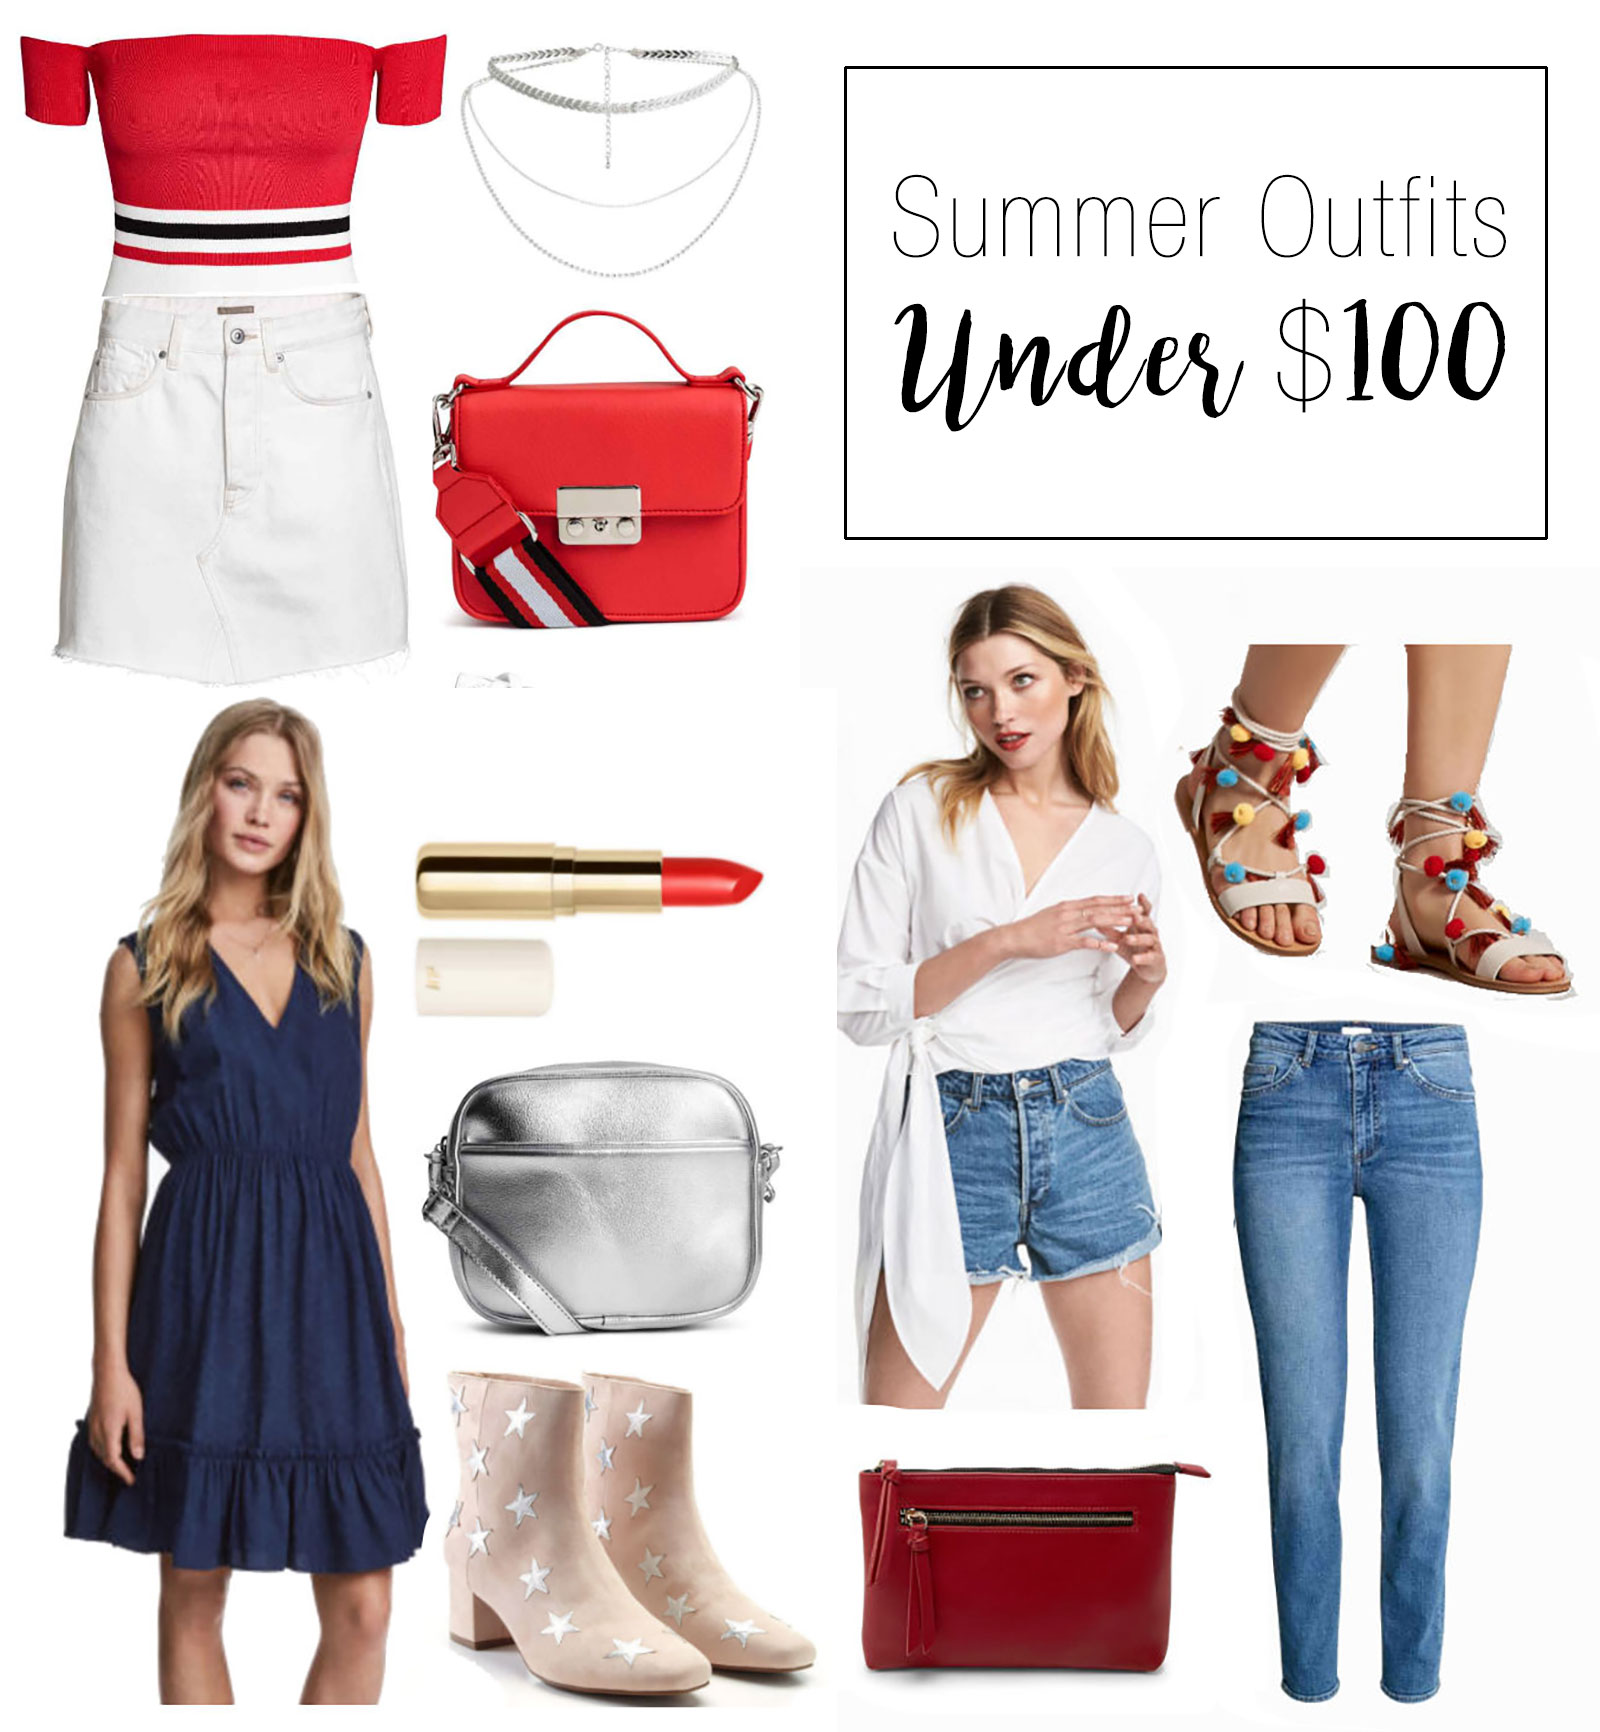 Cute summer outfit ideas under $100 total!